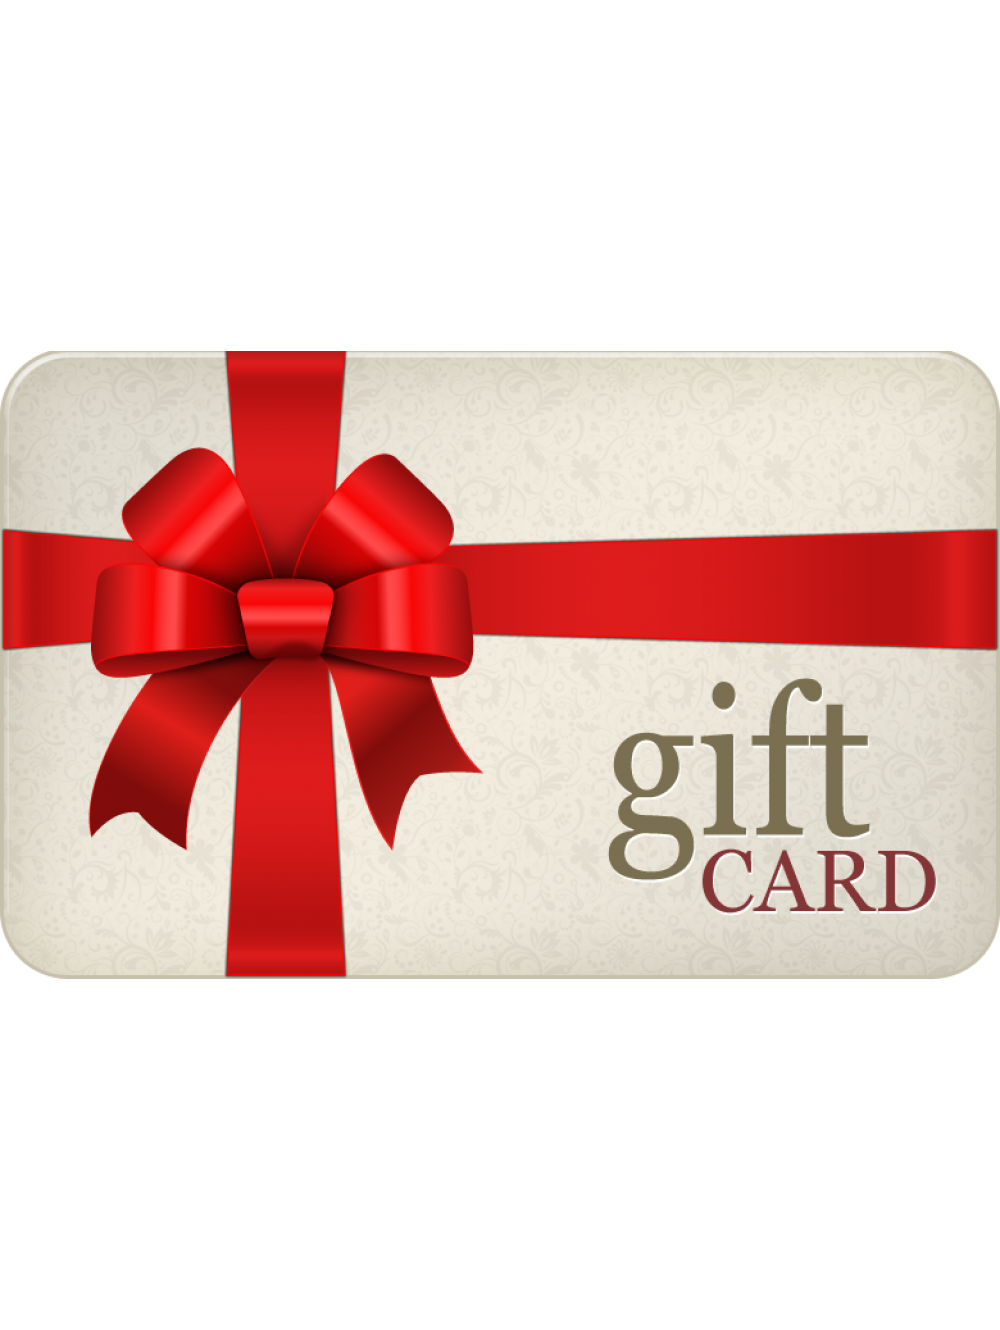 $80 for $100 gift card!.